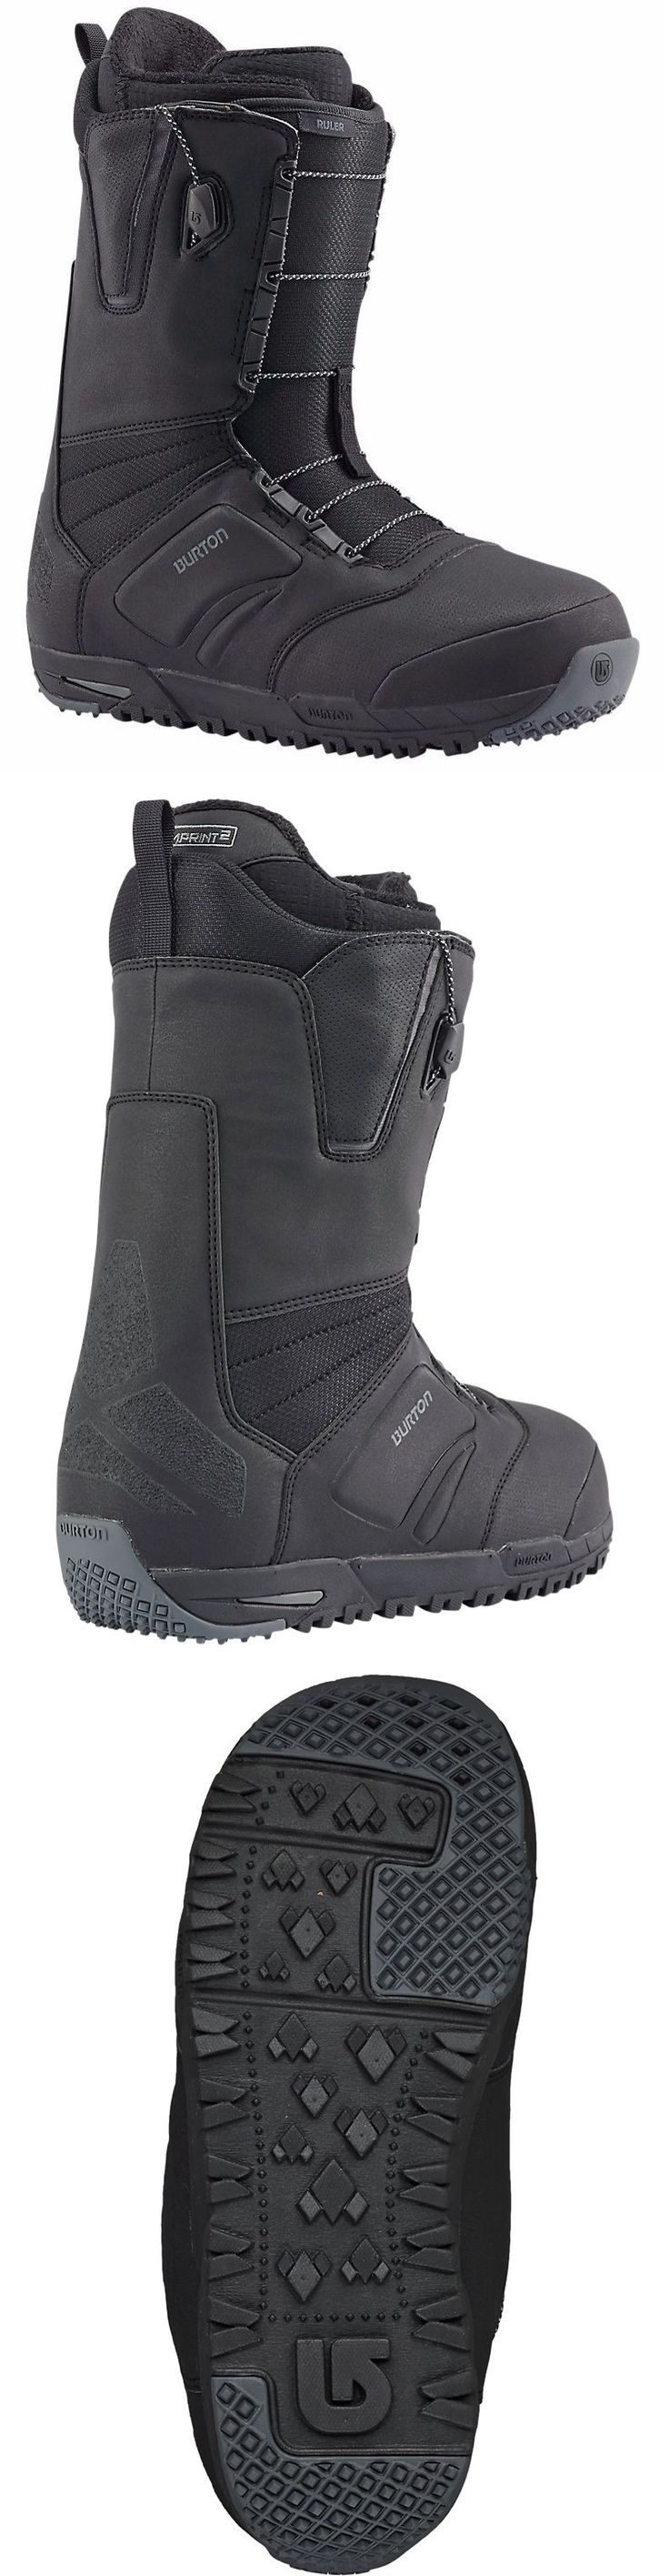 Boots 36292: Burton - Ruler   2017 - Mens Snowboard Boots - New   Black -> BUY IT NOW ONLY: $179.95 on eBay!